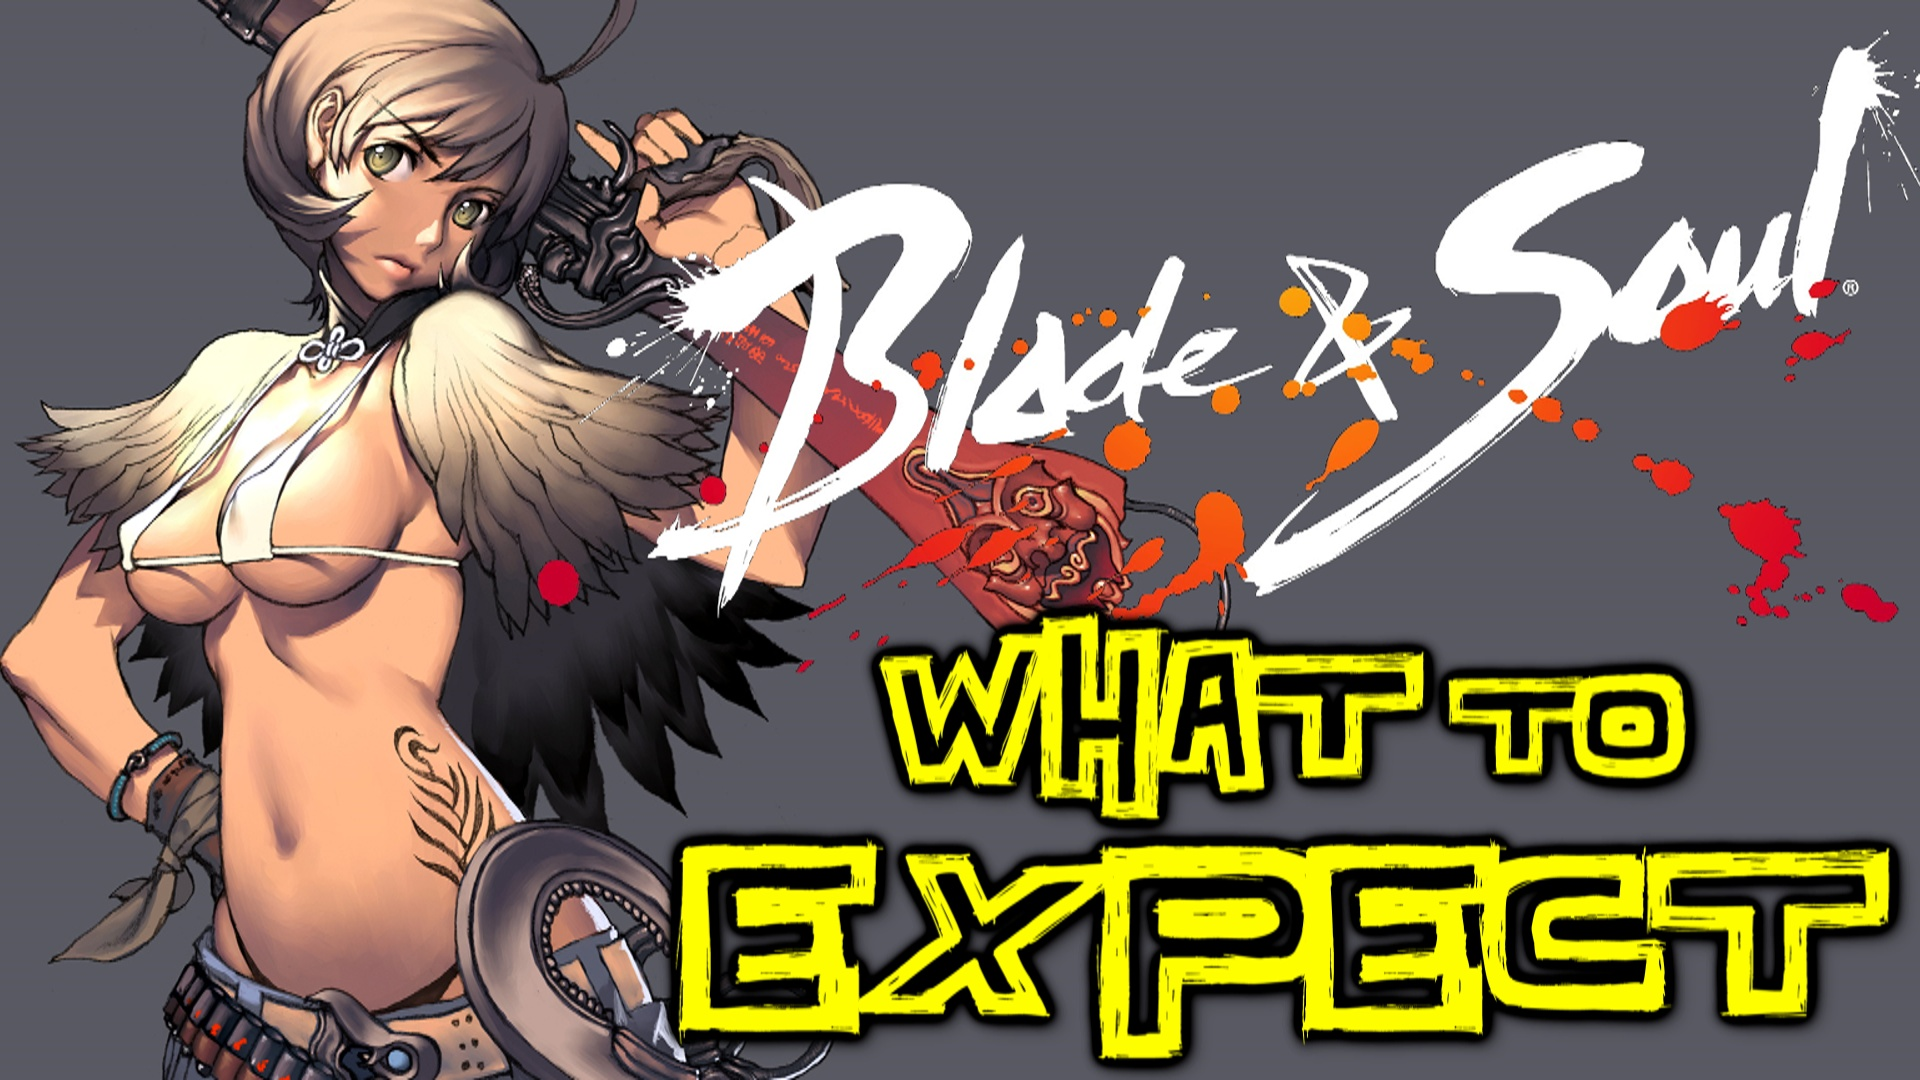 Blade & Soul in the West - What to Expect! NCSOFT Reveal